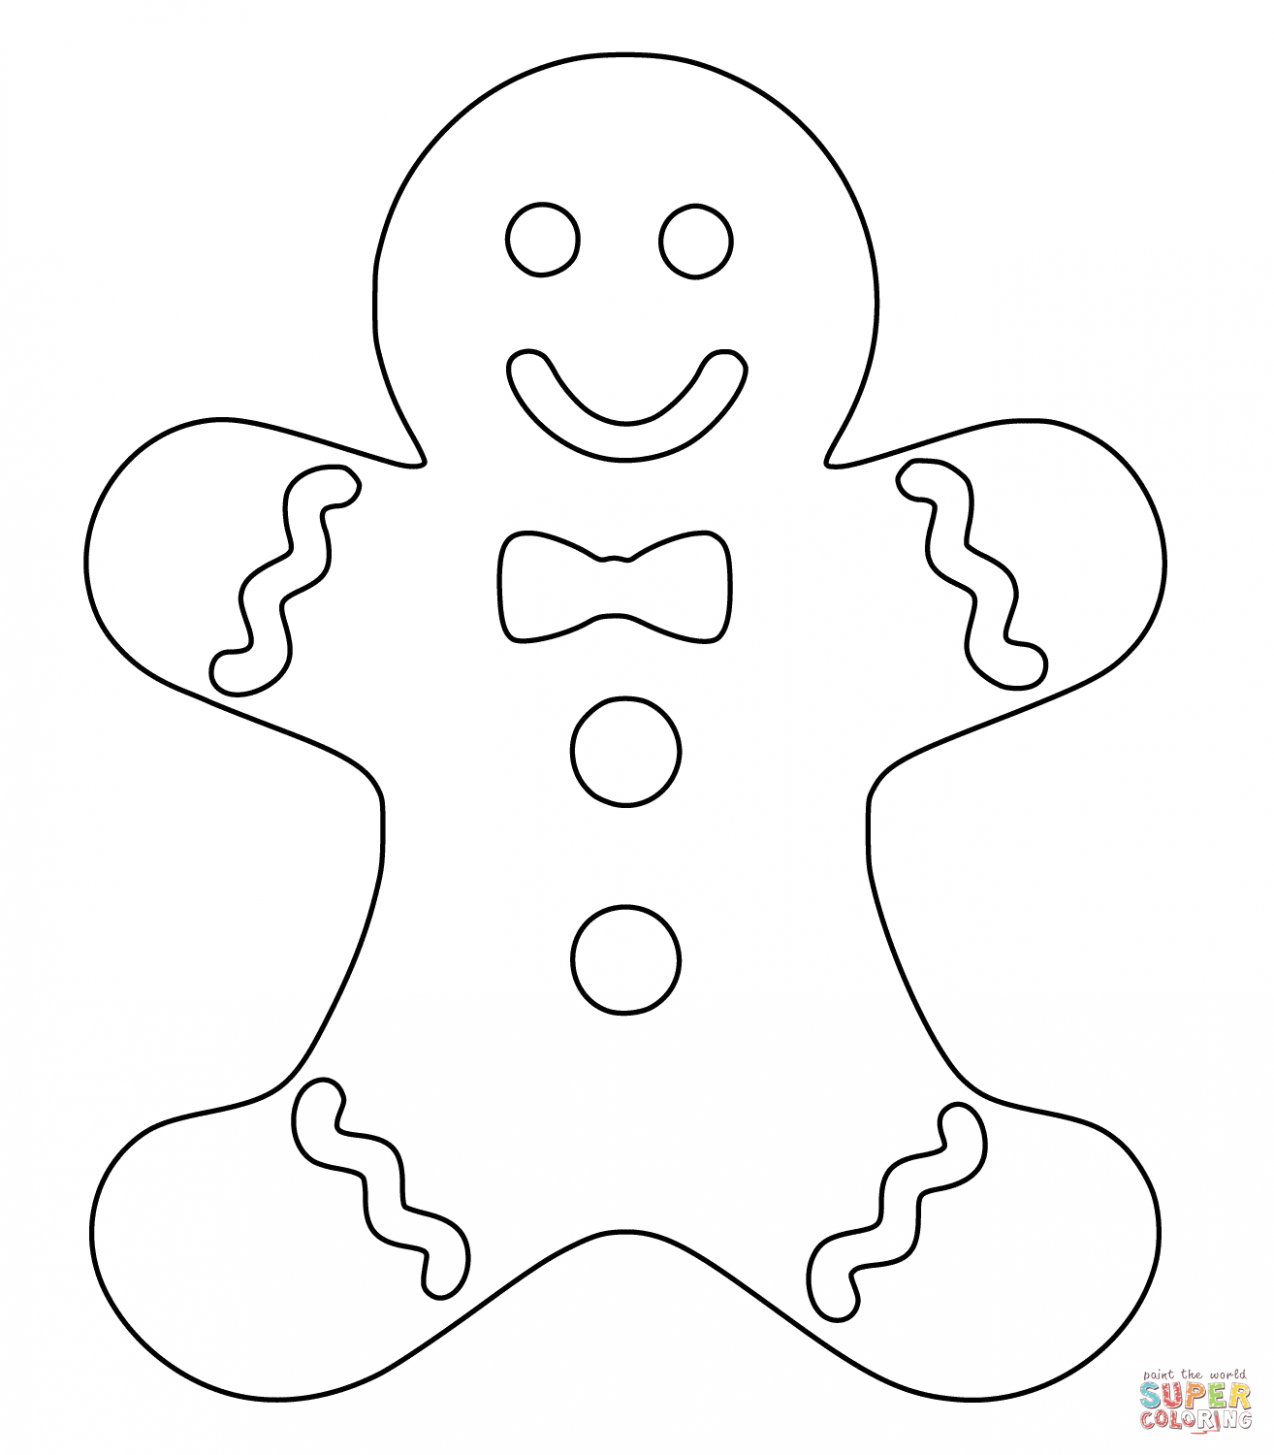 Christmas Gingerbread Man coloring page | Free Printable Coloring Pages – Christmas Coloring Gingerbread Man